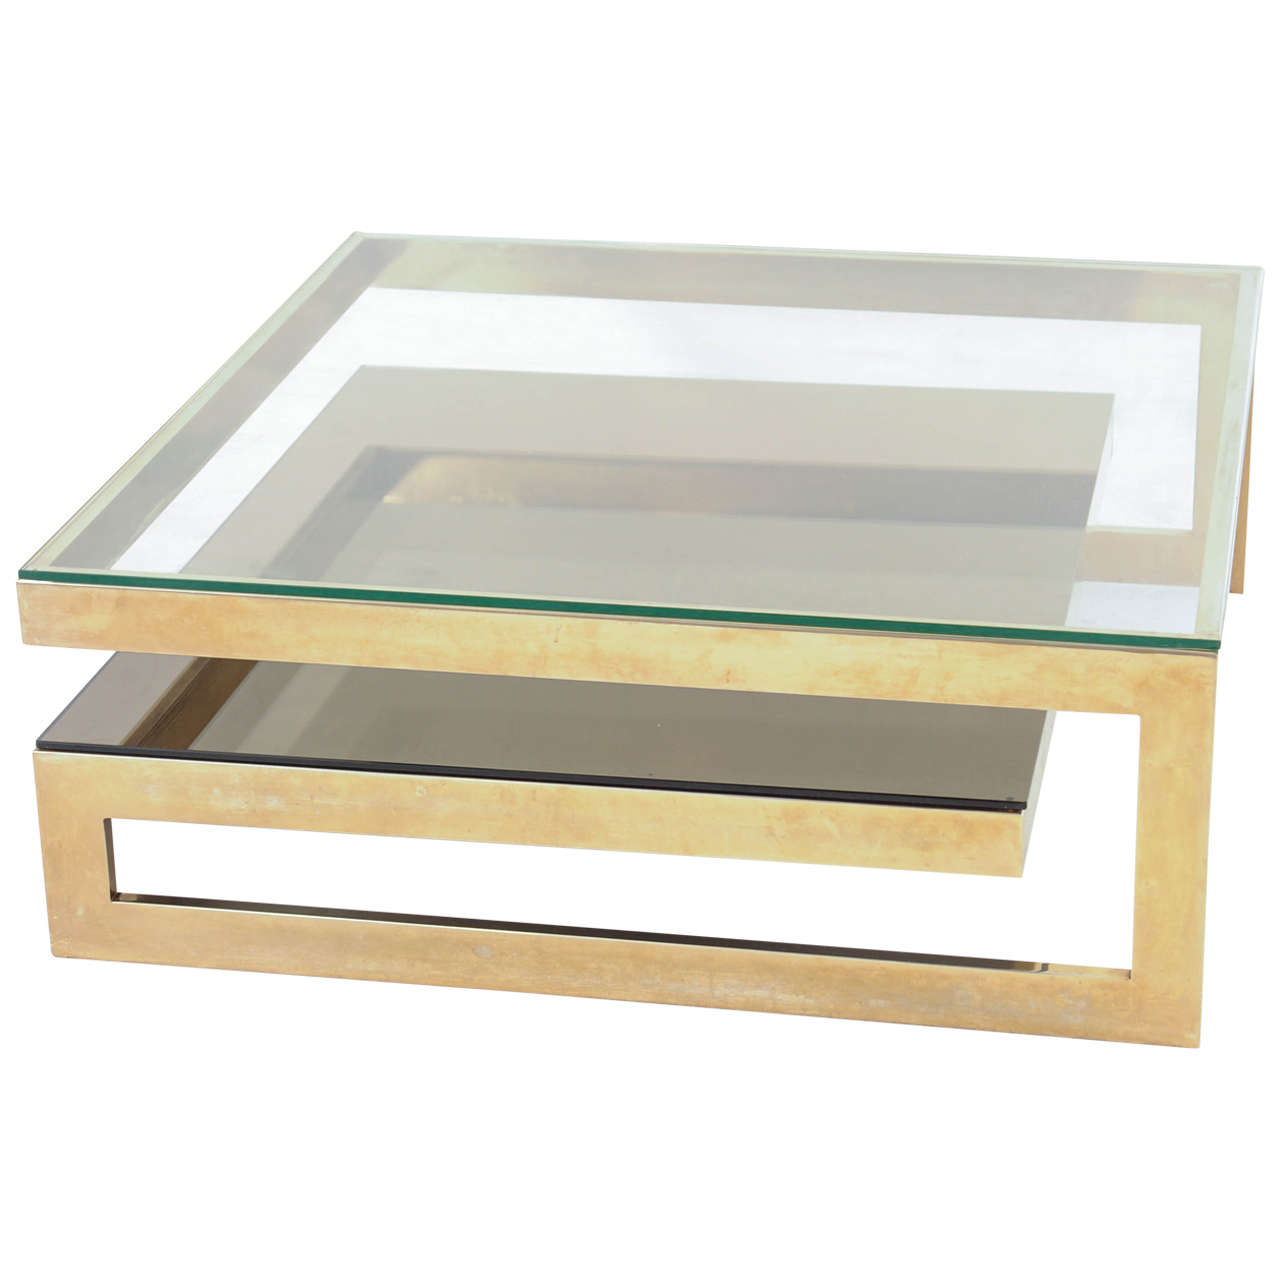 Gold Plated Coffee Table: G-Shaped, 23 Carat Gold Plated Coffee Table At 1stdibs